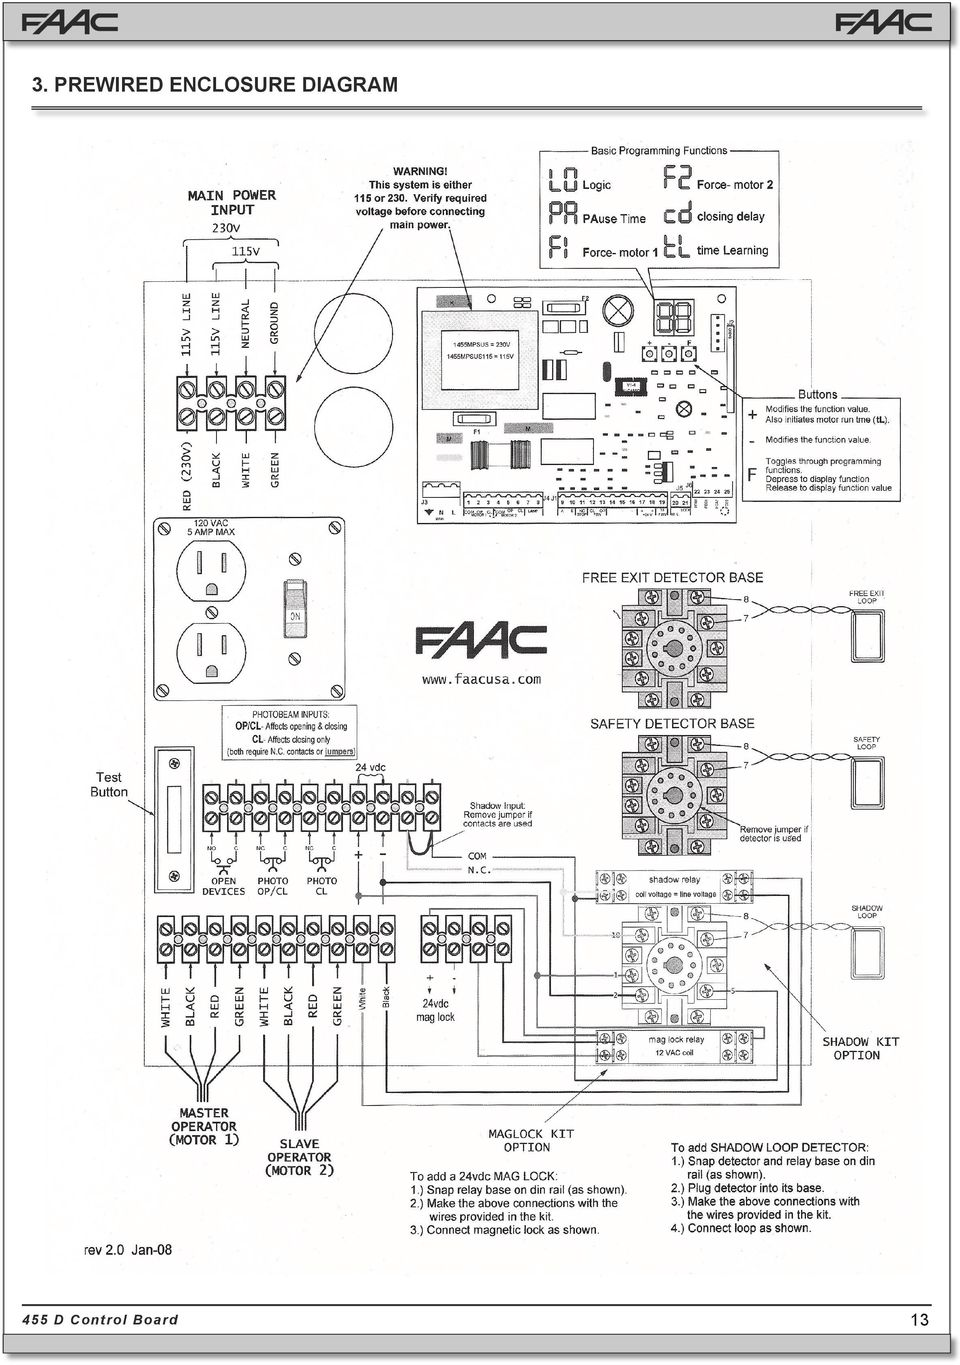 455 D Control Board. FAAC International Inc. West Coast ... Faac D Photo Eye Wiring Diagram on